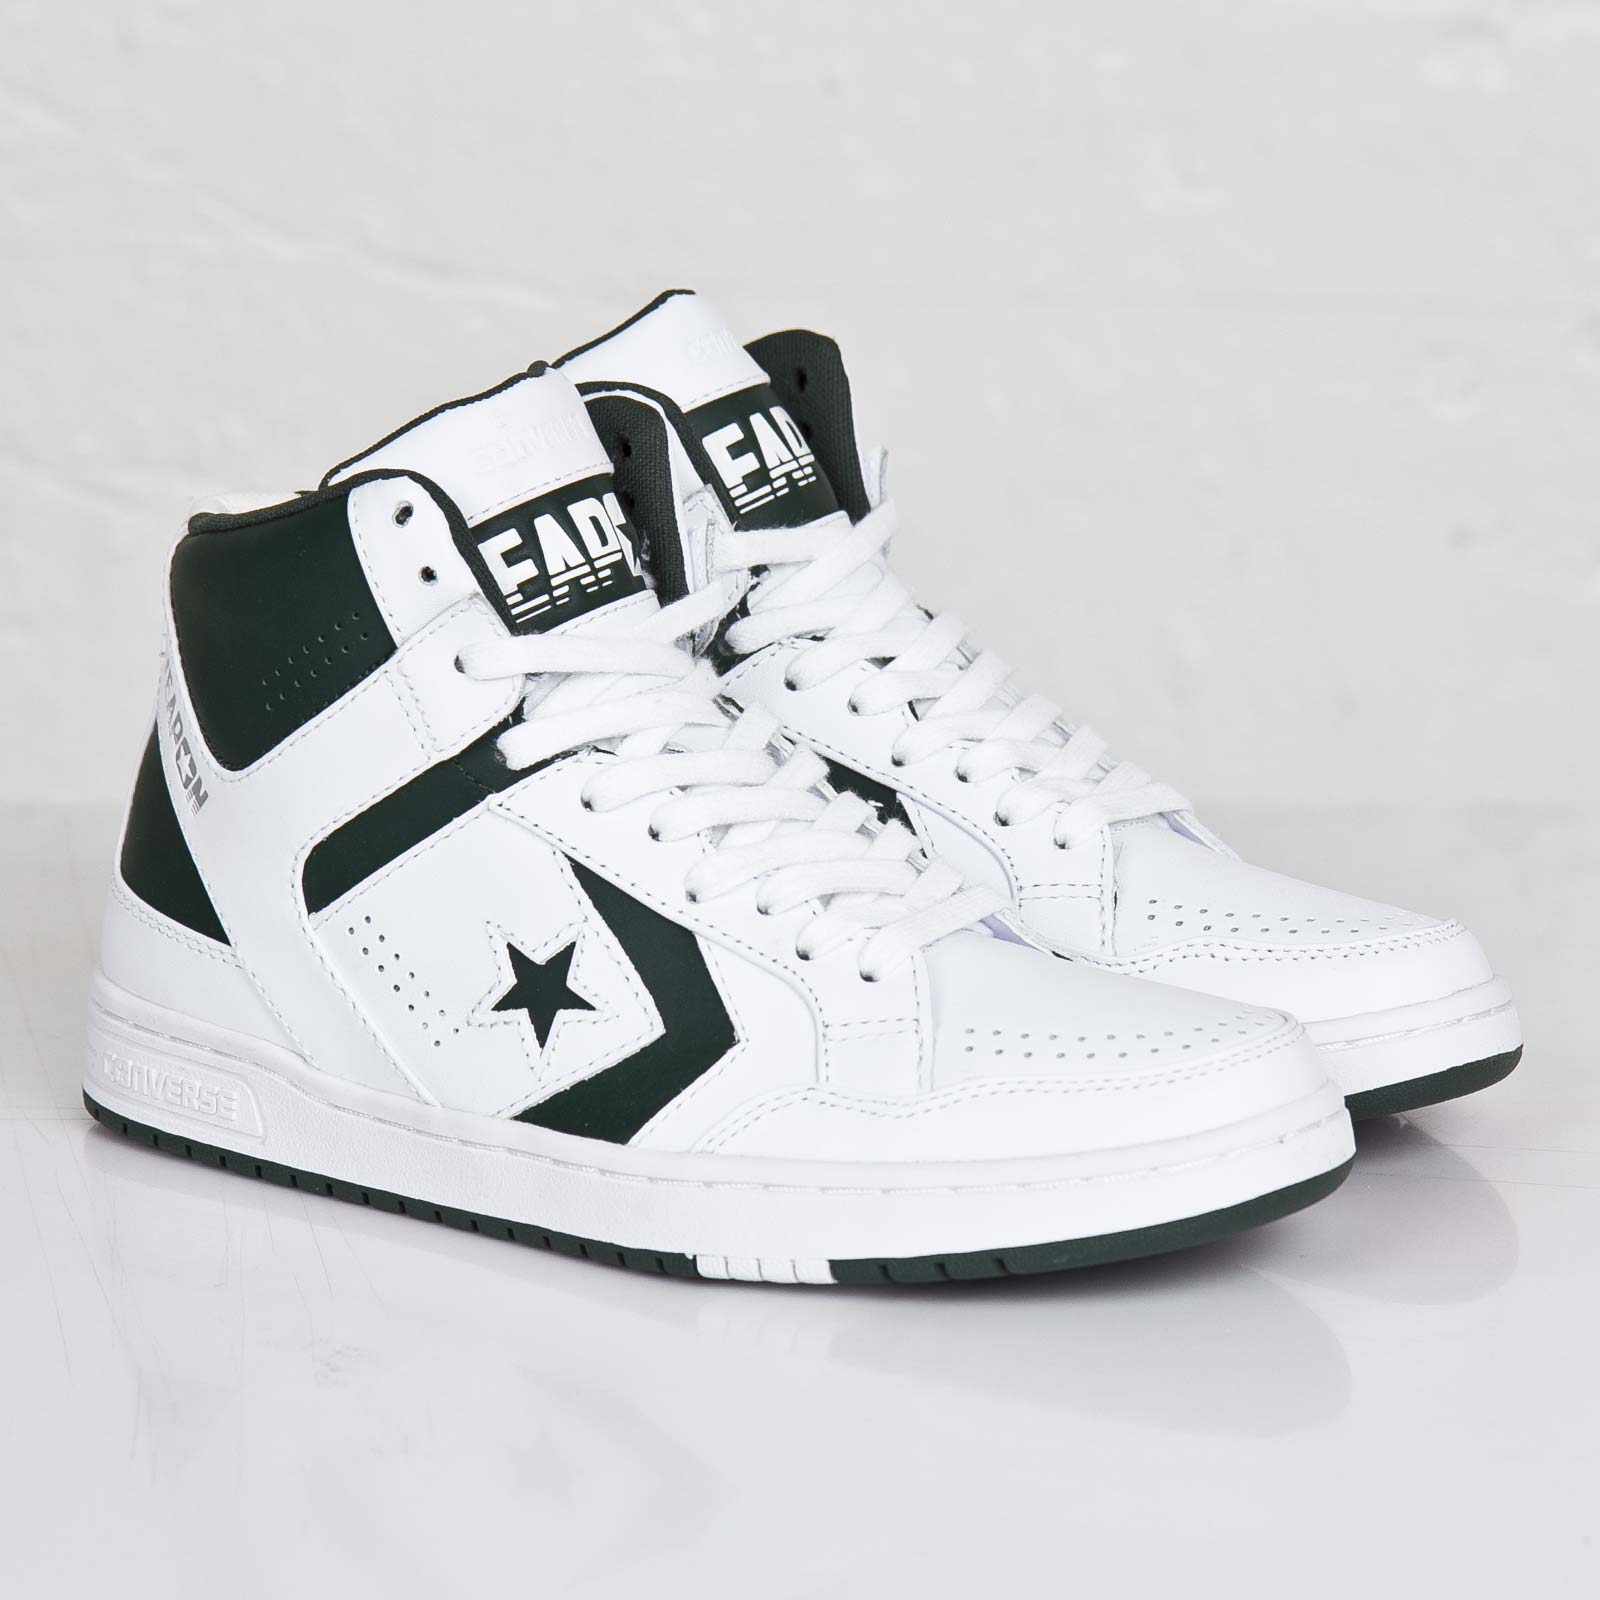 3572f2adb0a Converse Weapon mid - 144548c - Sneakersnstuff | sneakers ...